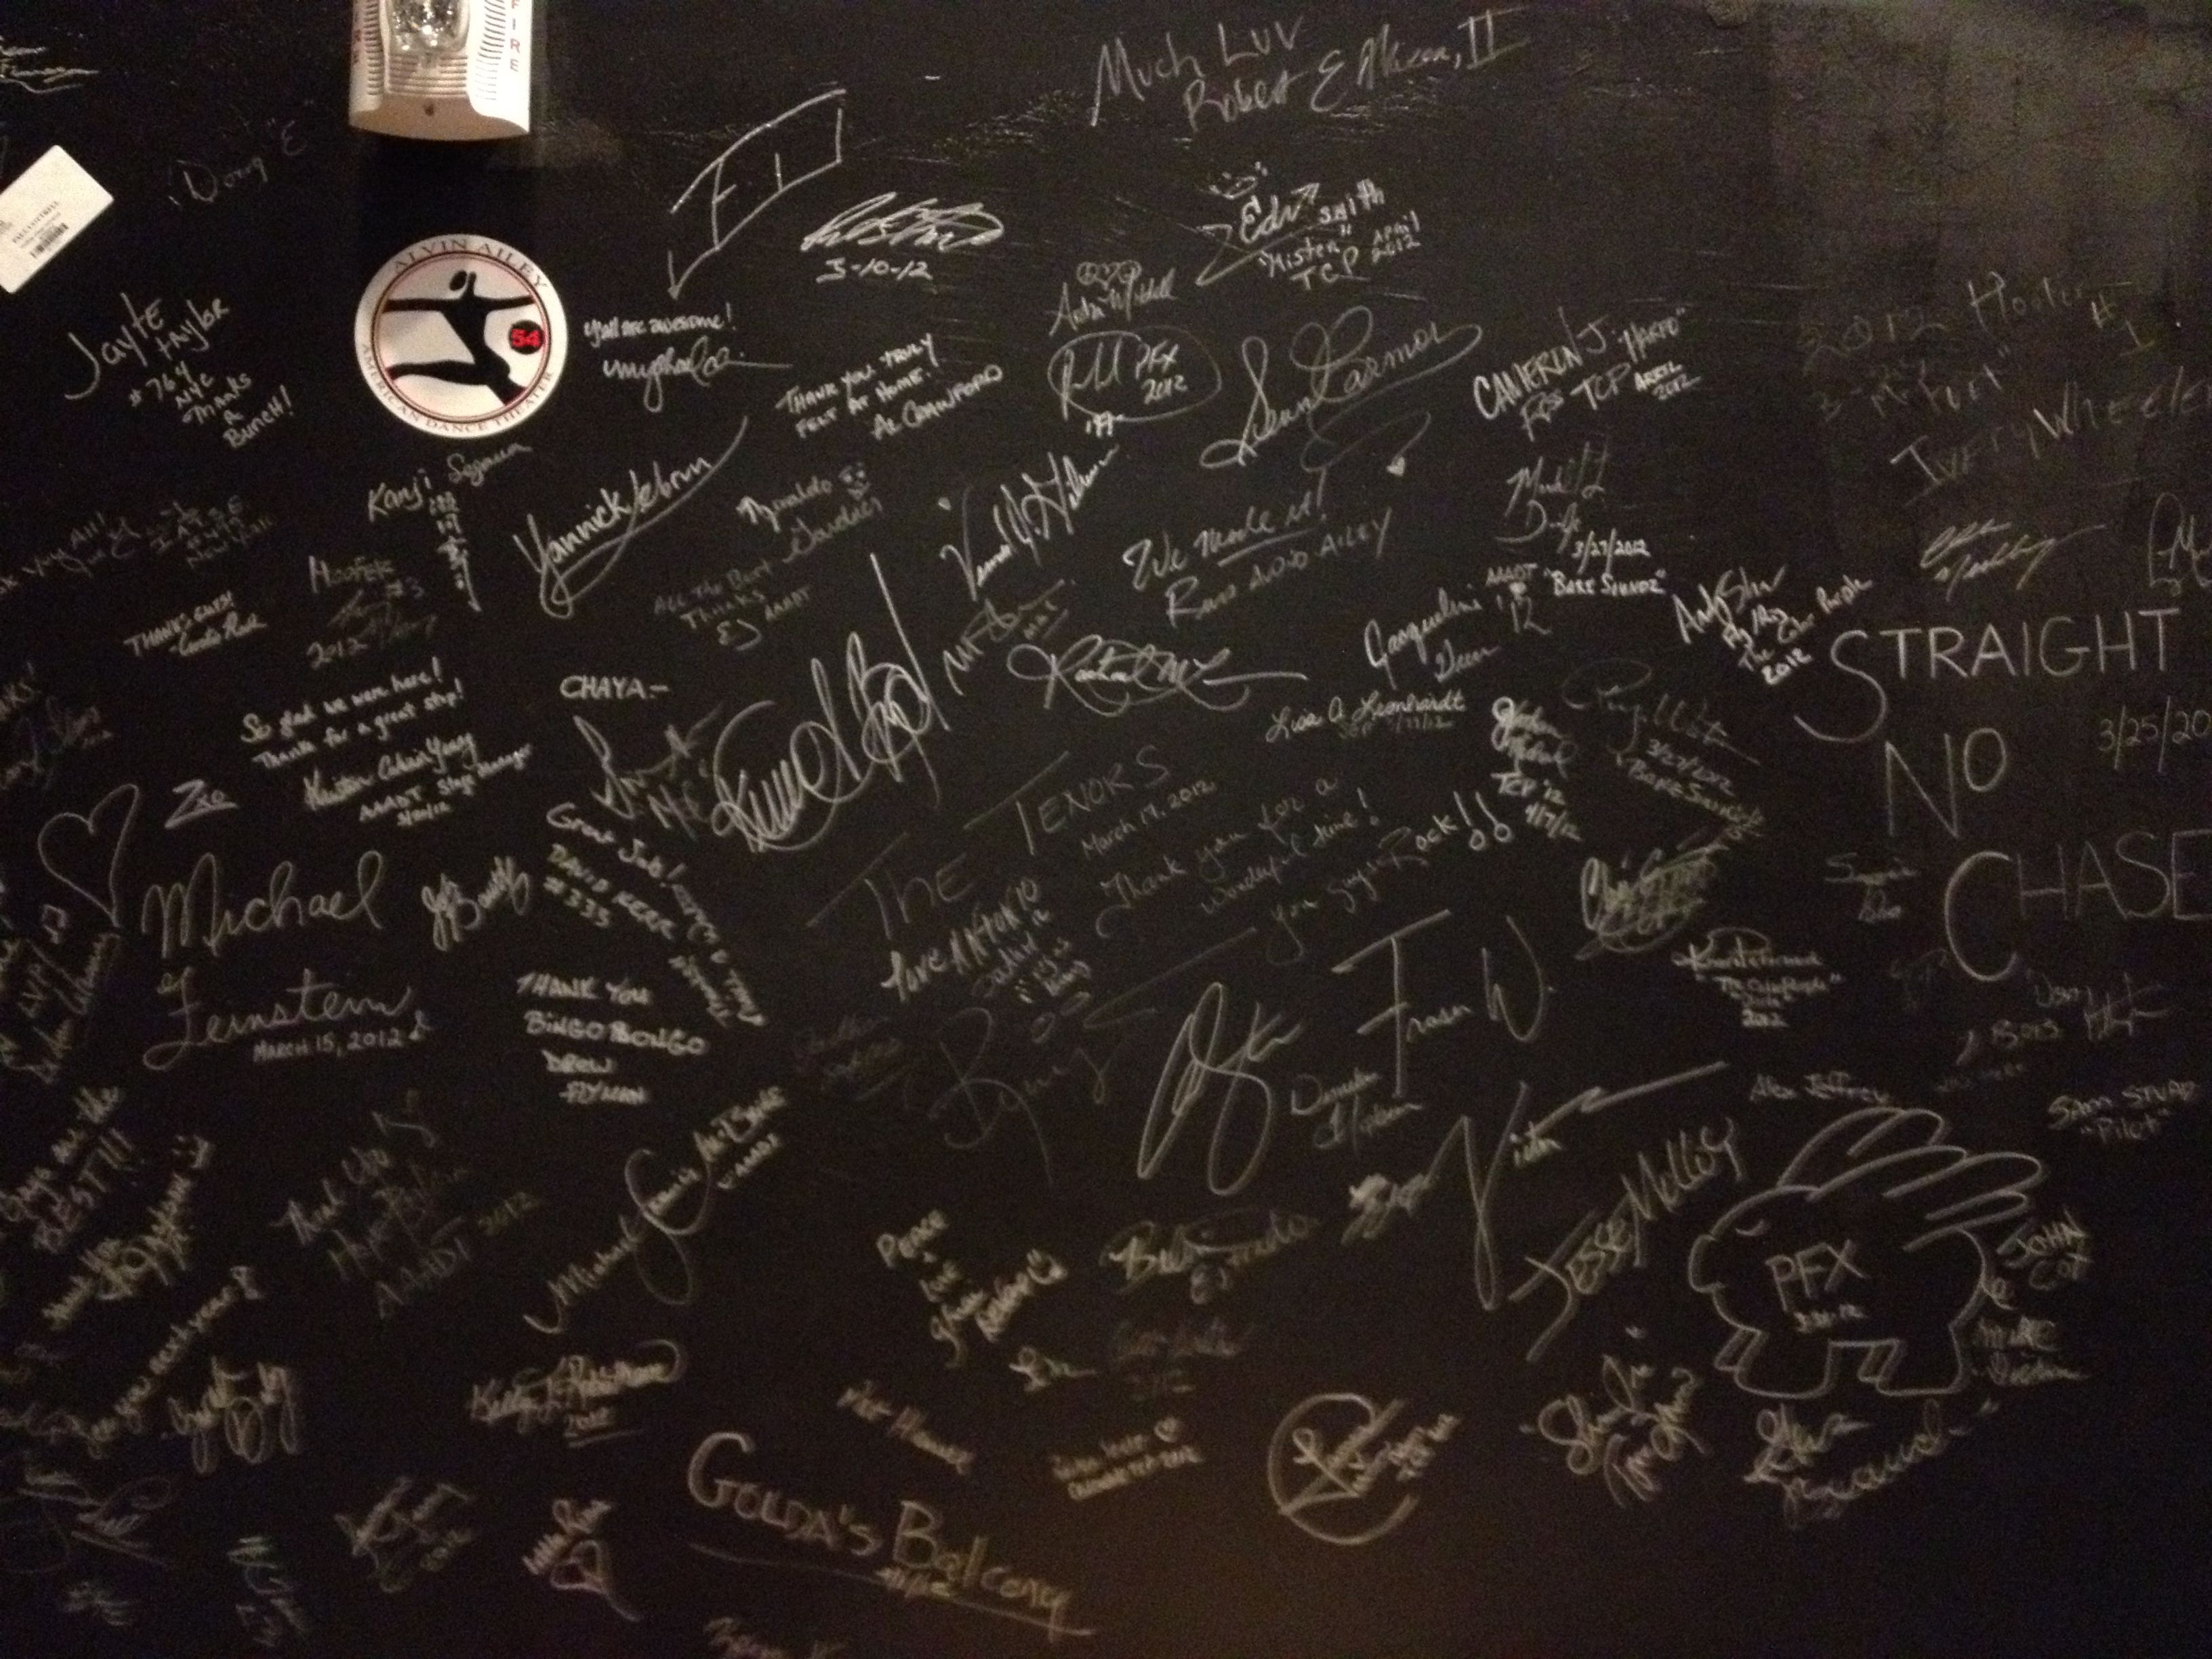 Nv united states rough in piping for outdoor island sink and bbq - Autograph Wall Backstage In Reynolds Hall At The Smith Center Las Vegas Nv